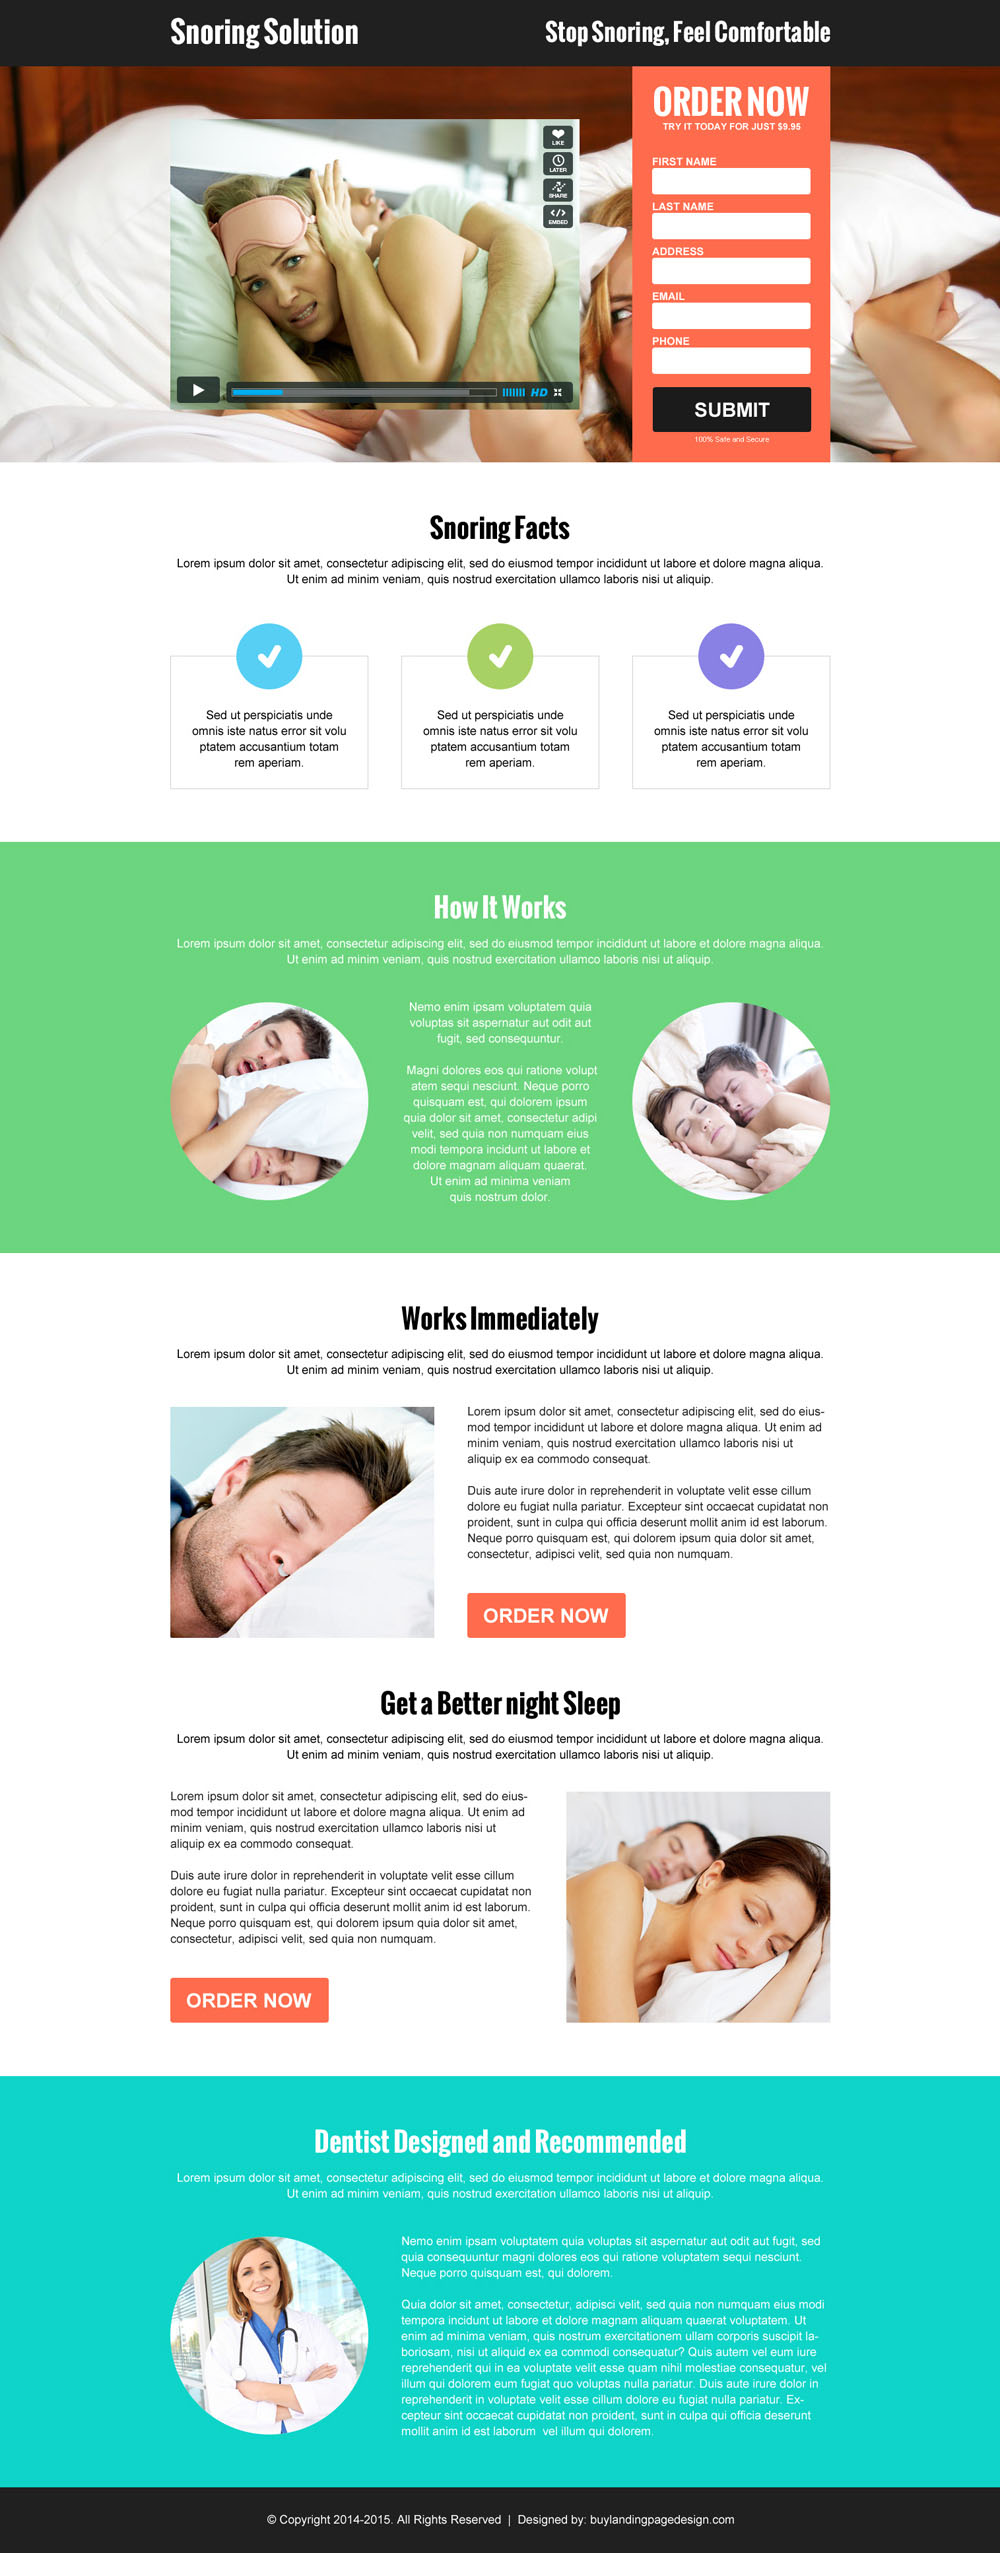 anti-snoring-product-selling-lead-capture-converting-video-landing-page-design-template-018